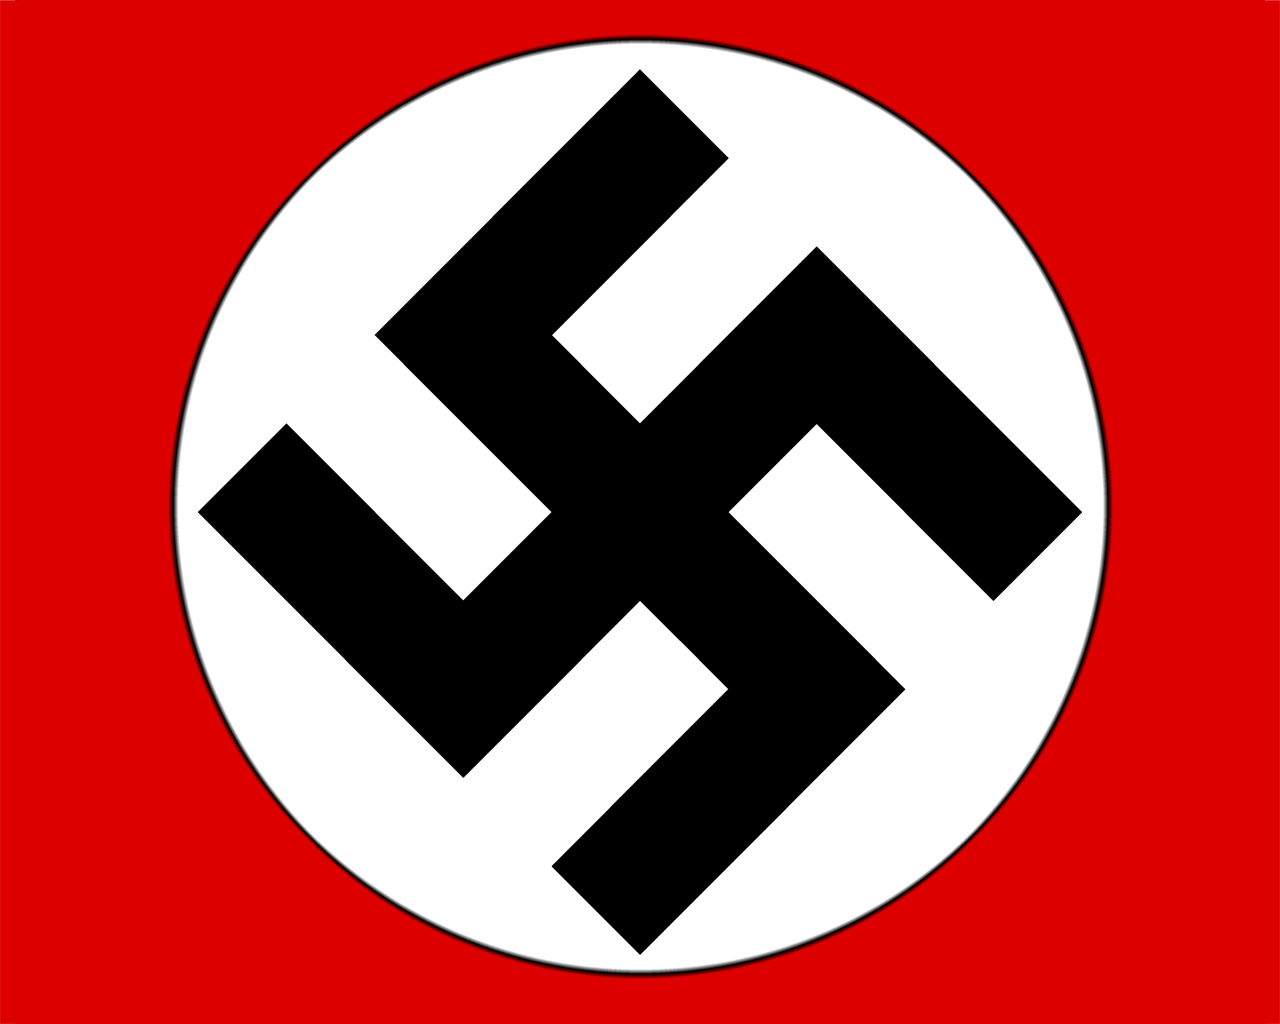 external image swastika-inverted.jpg